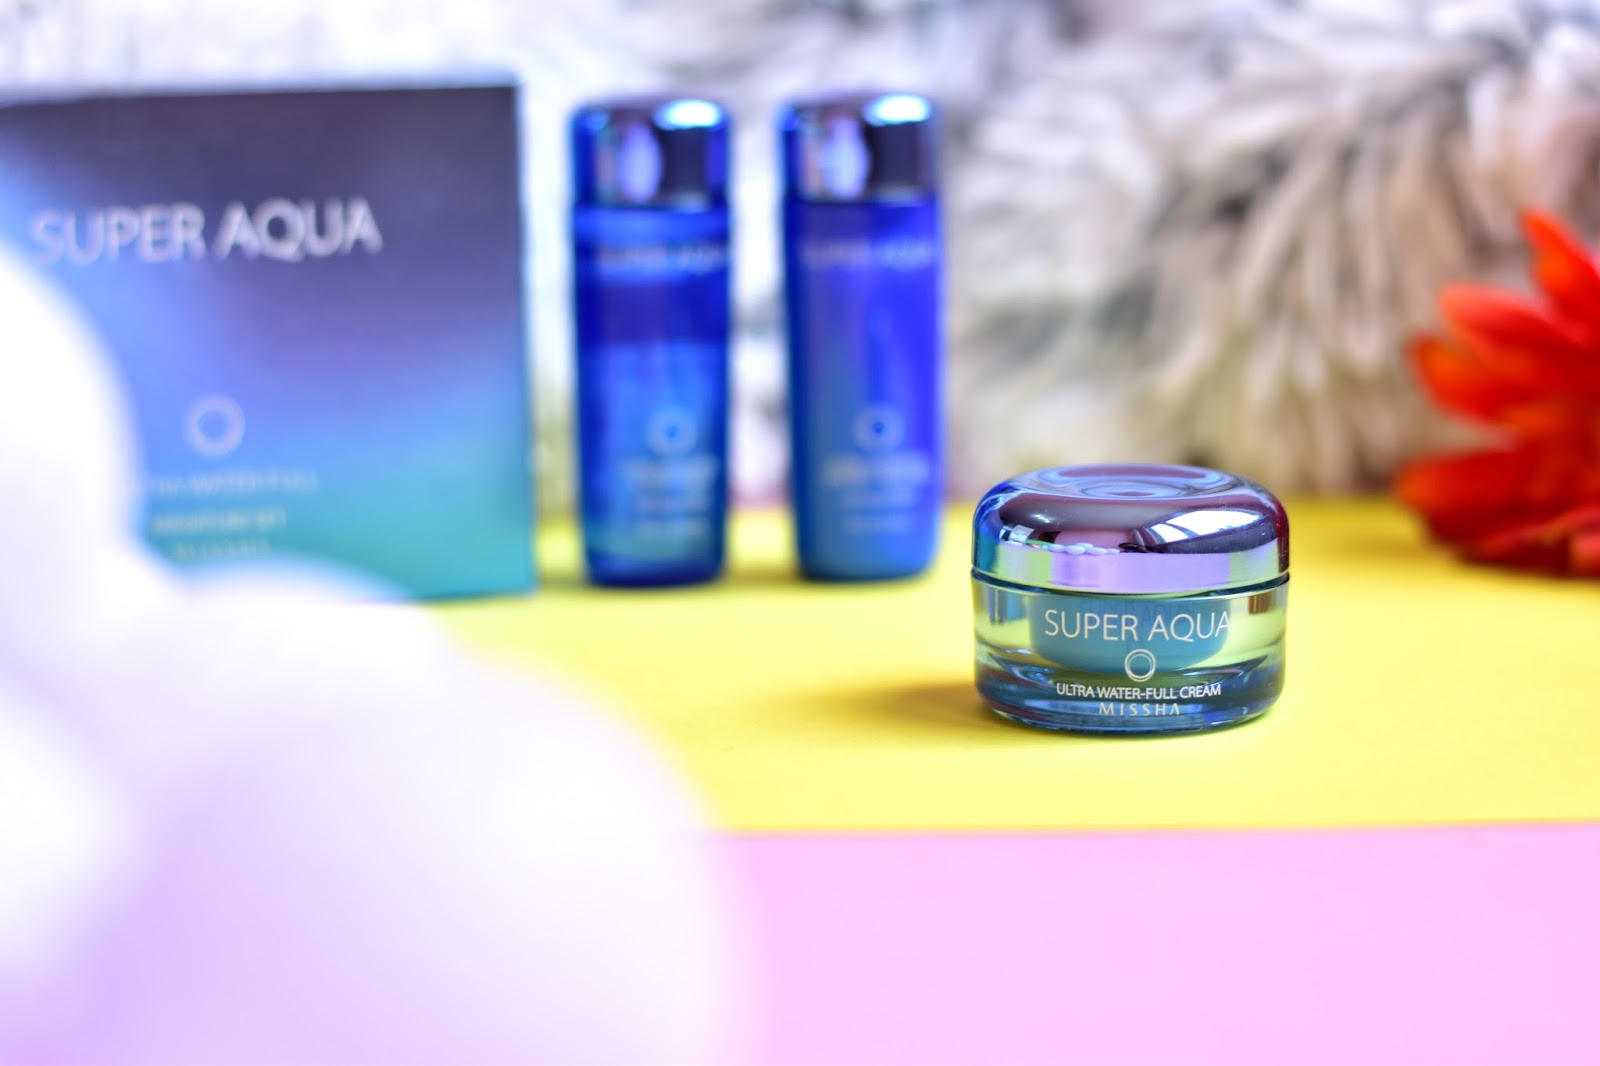 MISSHA Super Aqua Ultra Water-Full